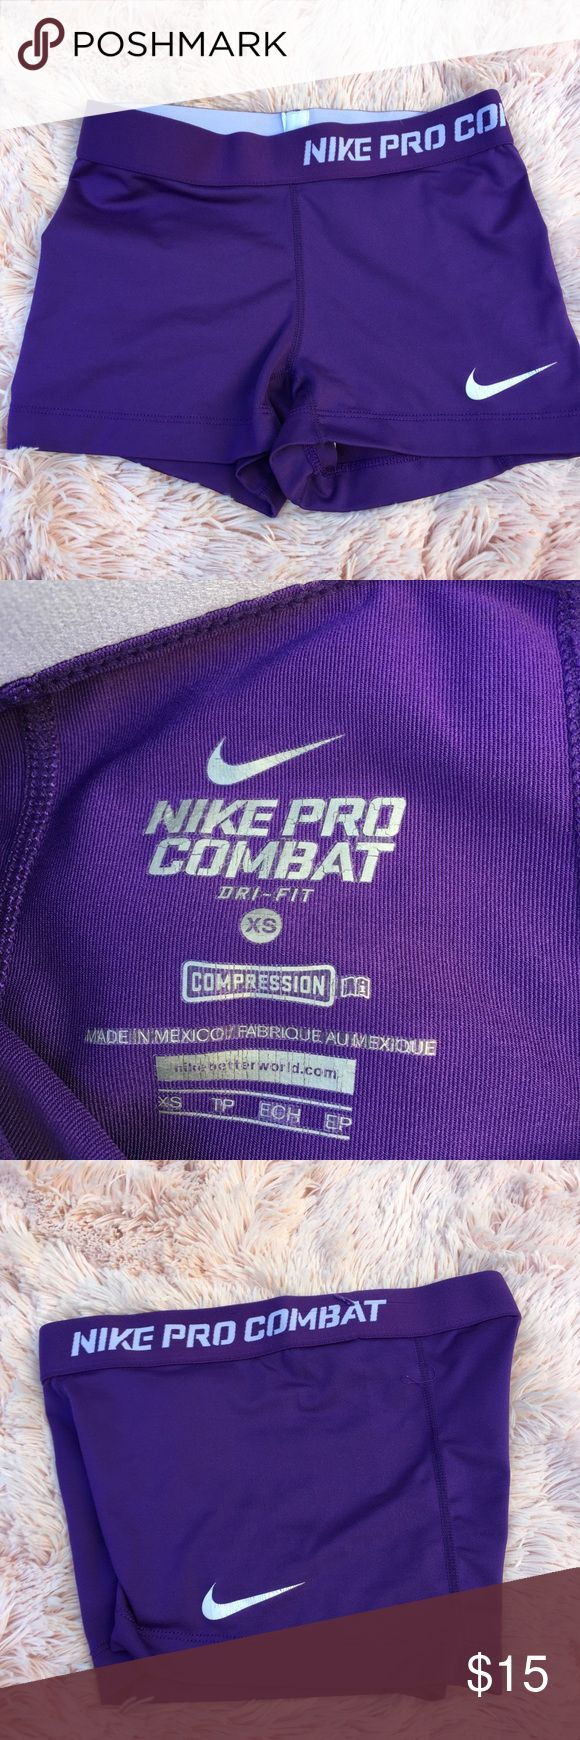 Nike pro combat compression shorts Some cracking on the logo other than that still good condition size xs Nike Shorts